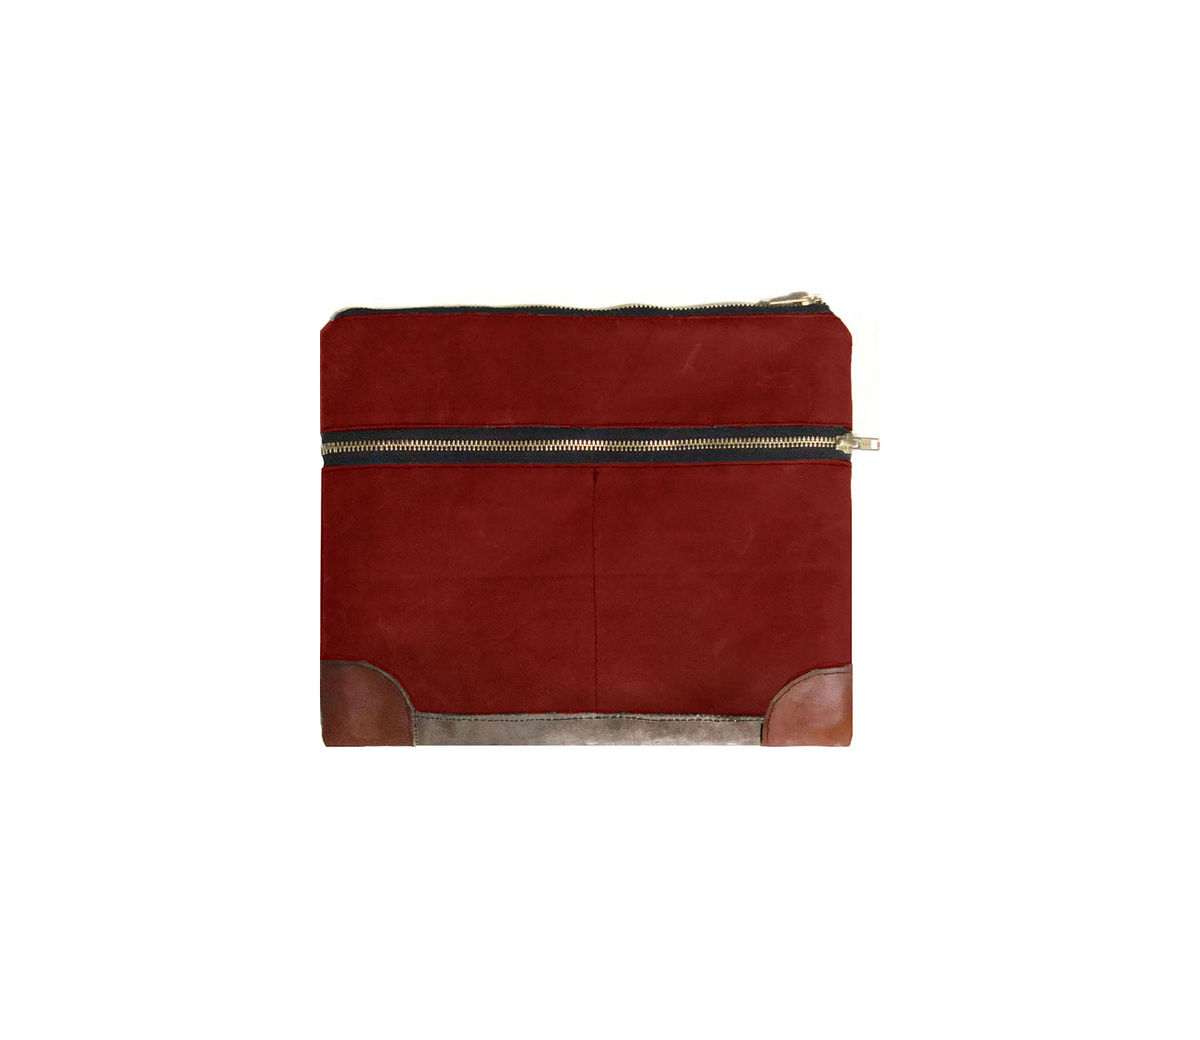 Everything iPad Case, Gadget Case - Sailor Custom Waxed Canvas and Leather in Blood Root - product images  of